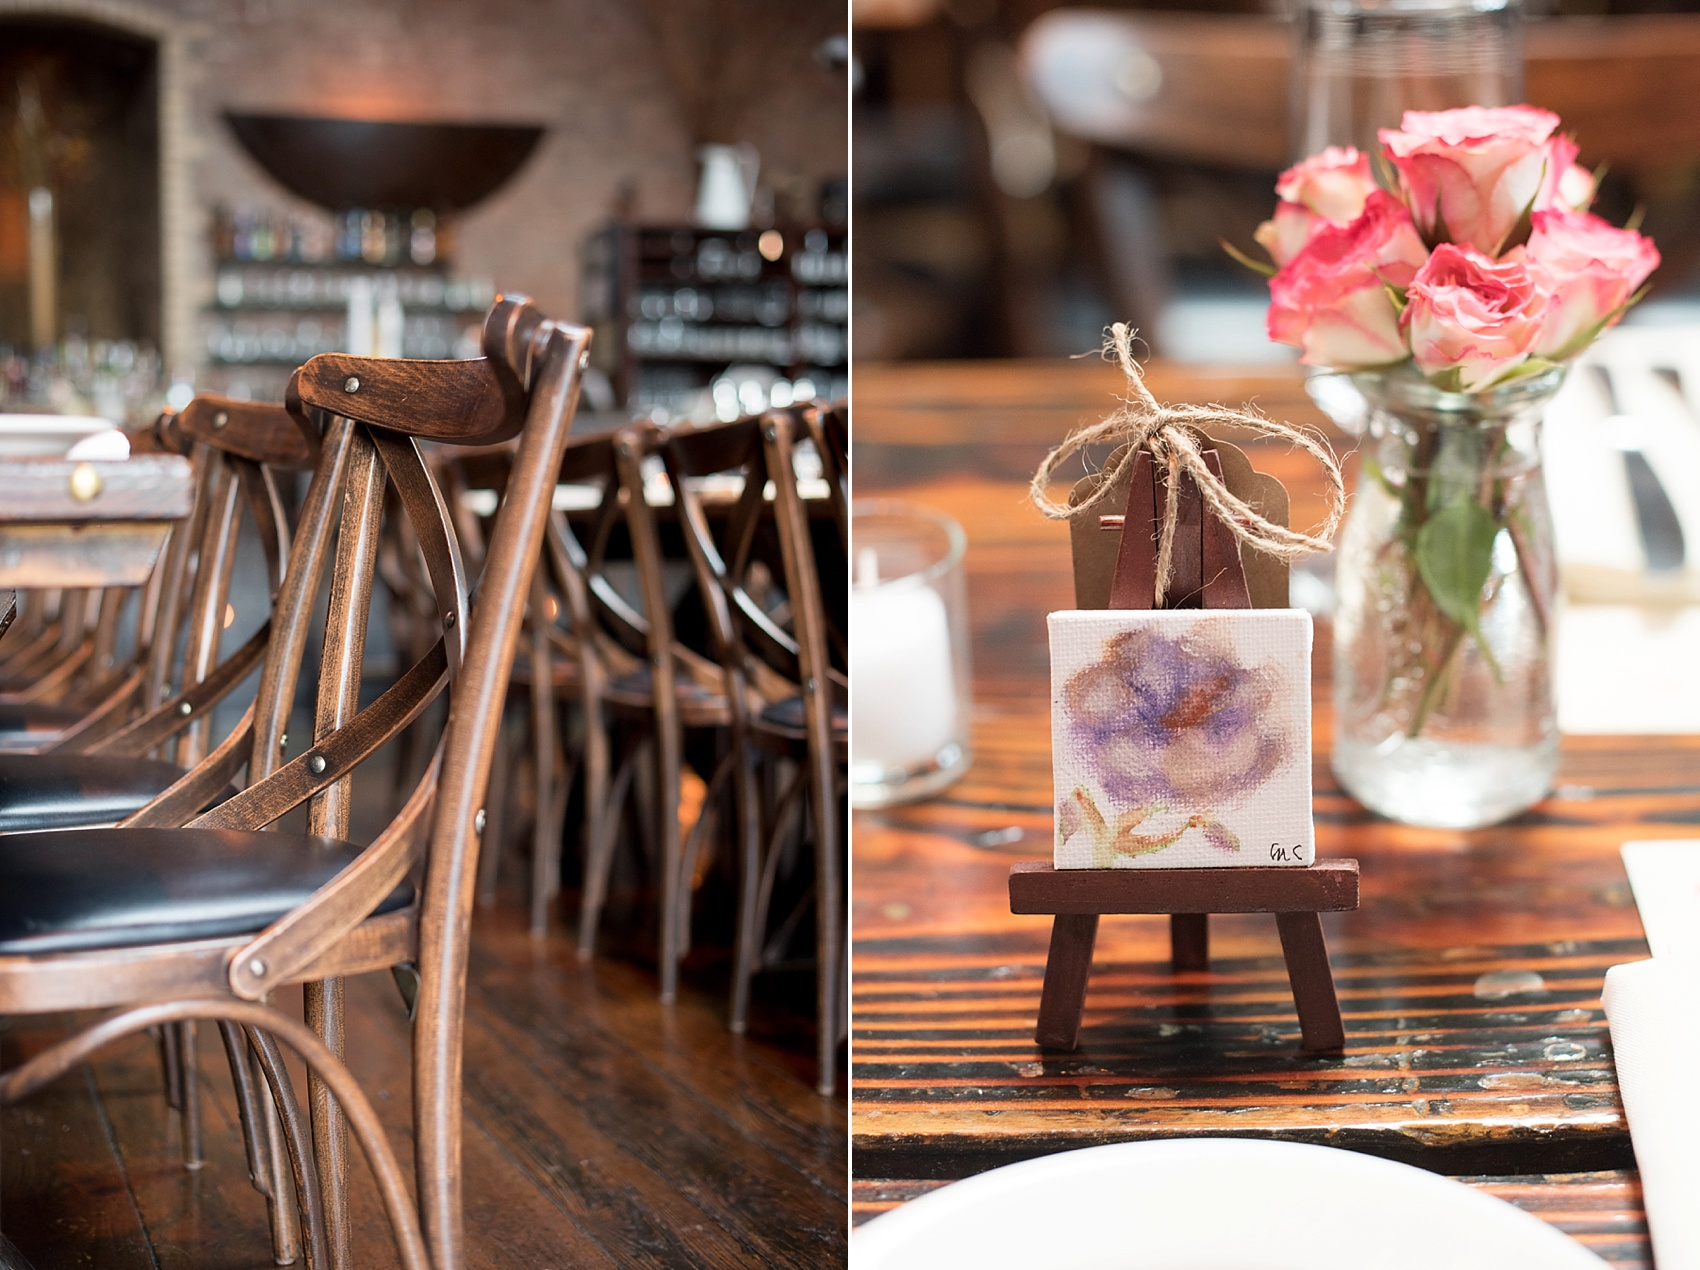 Rustic romantic My Moon Brooklyn, Williamsburg NYC, intimate wedding with custom floral canvas gifts. Photos by Mikkel Paige Photography.